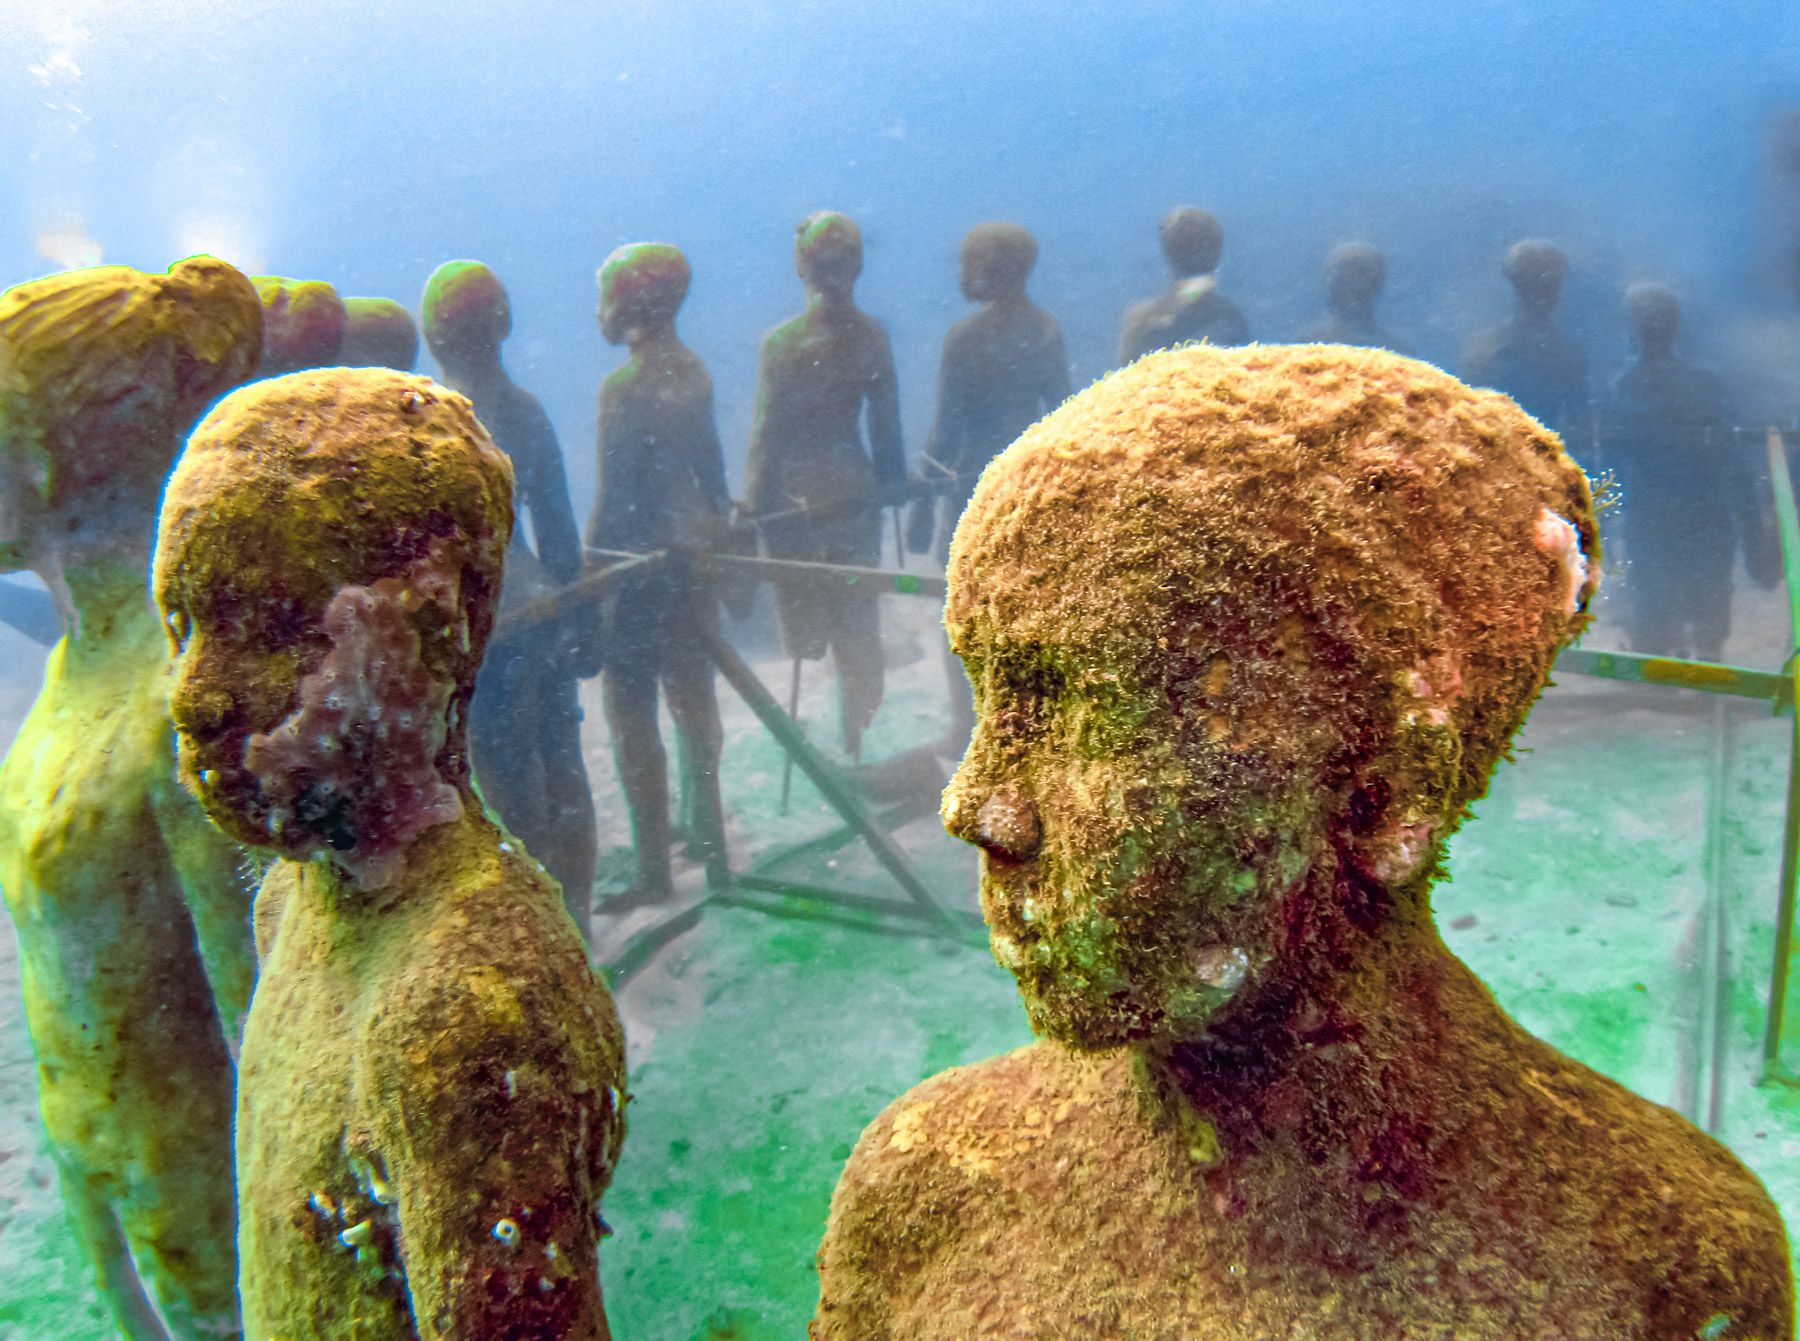 Underwater Sculpture Park Children Grenada